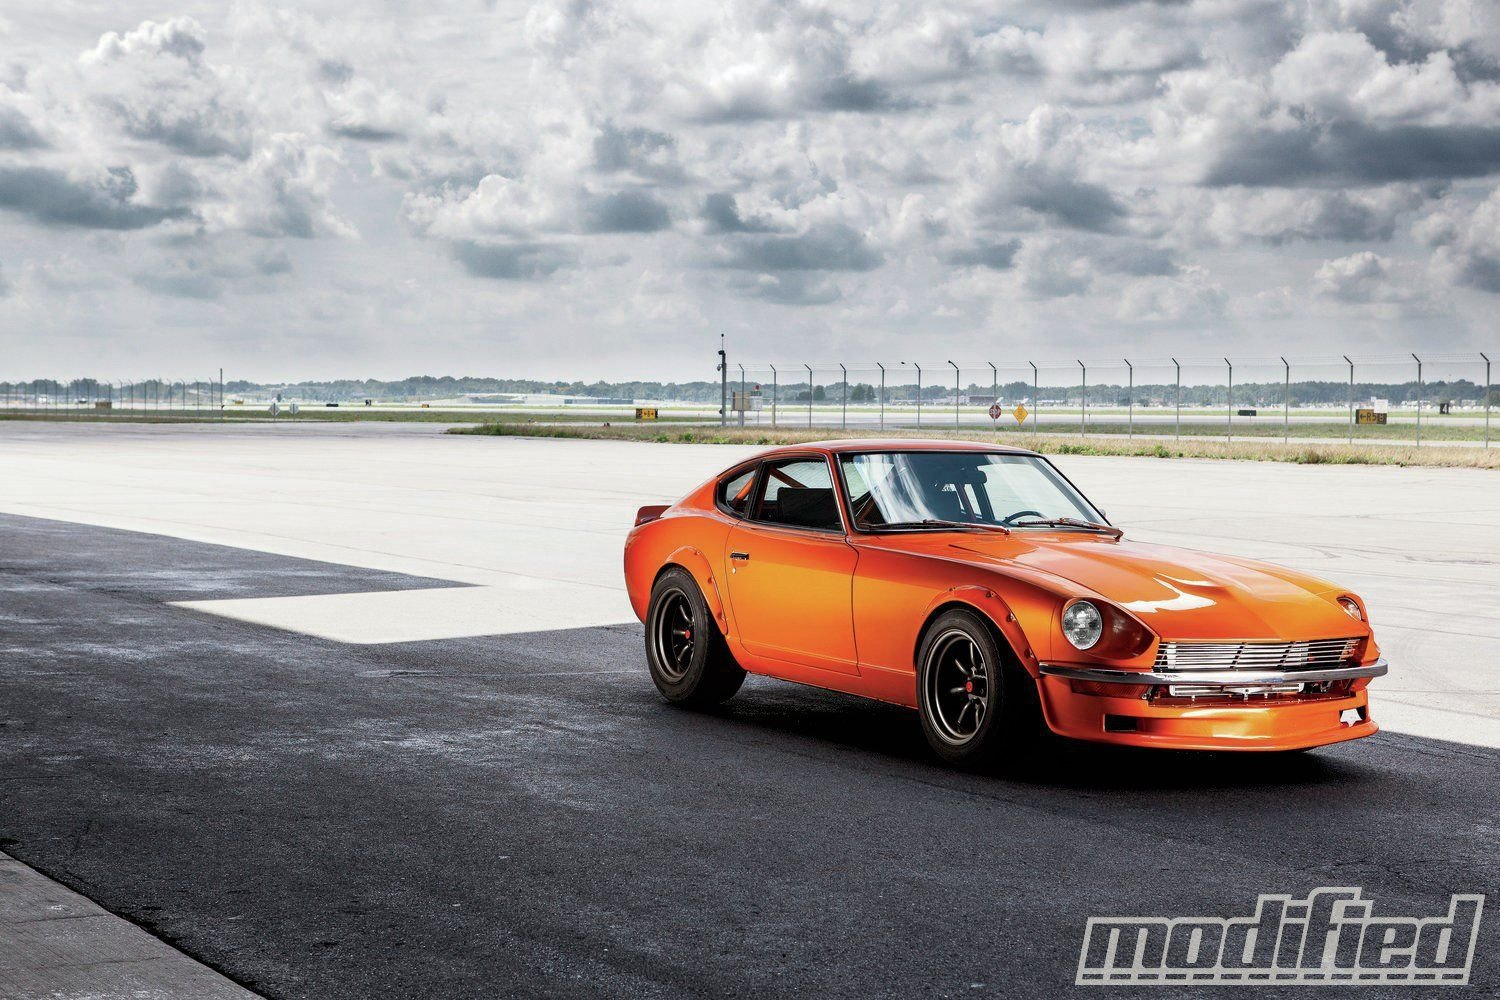 nissan datsun 240z coupe japan tuning cars fairlady wallpaper 1500x1000 502176 wallpaperup. Black Bedroom Furniture Sets. Home Design Ideas